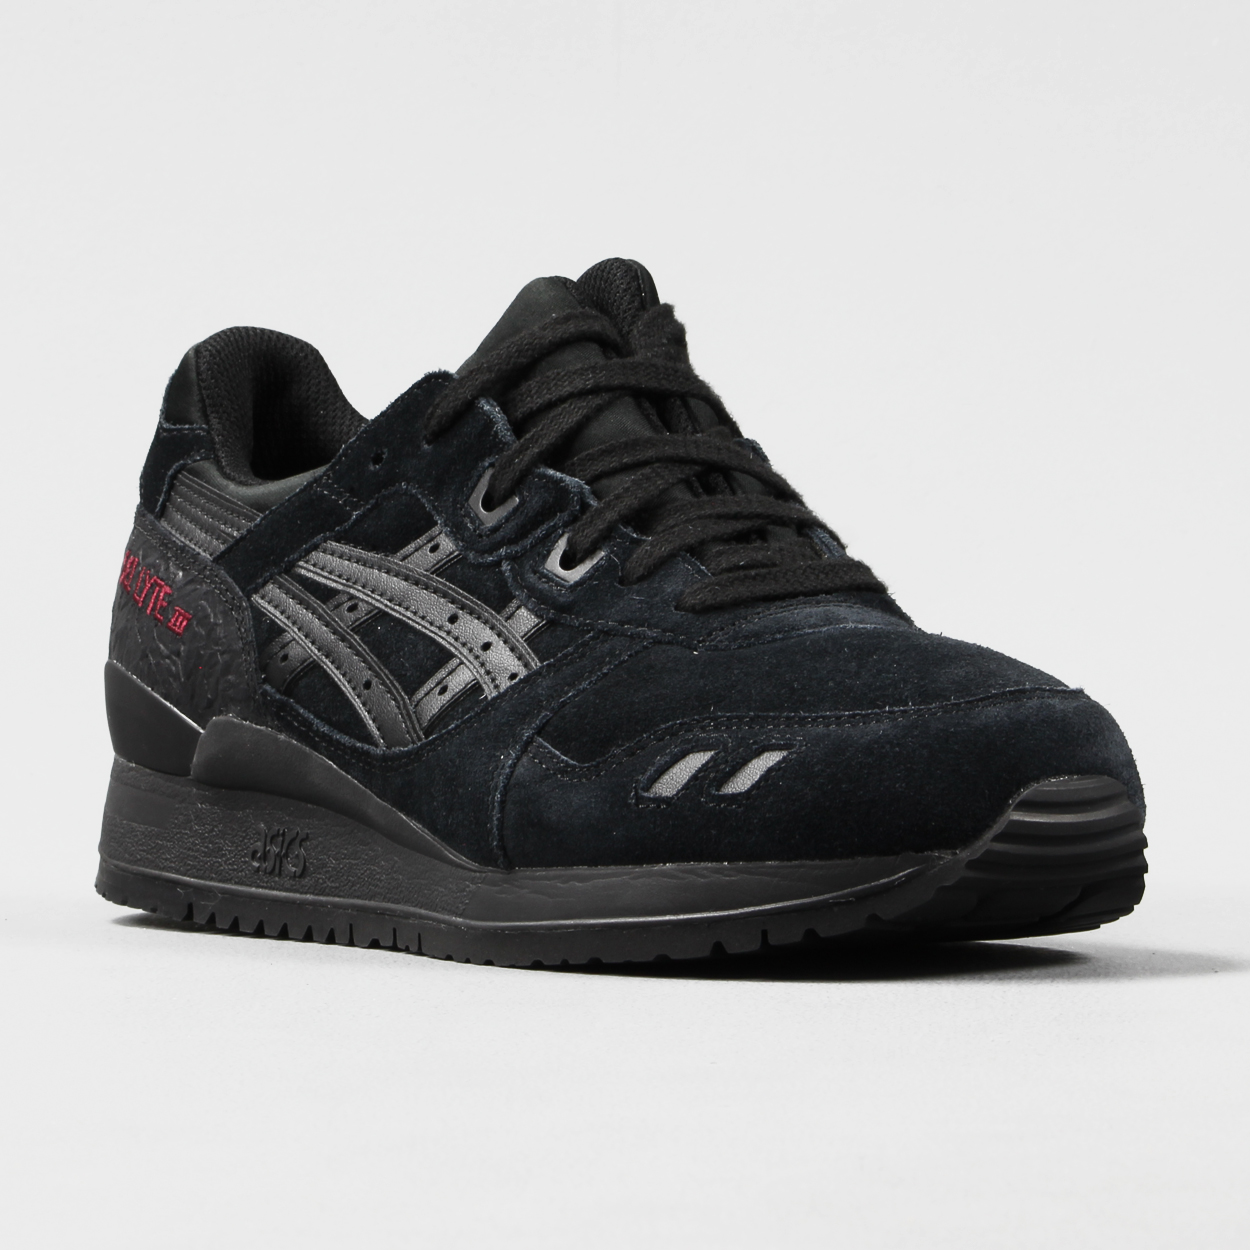 lowest price f913a b2979 Asics Mens Valentines Pack Gel Lyte III Suede Shoes Black ...